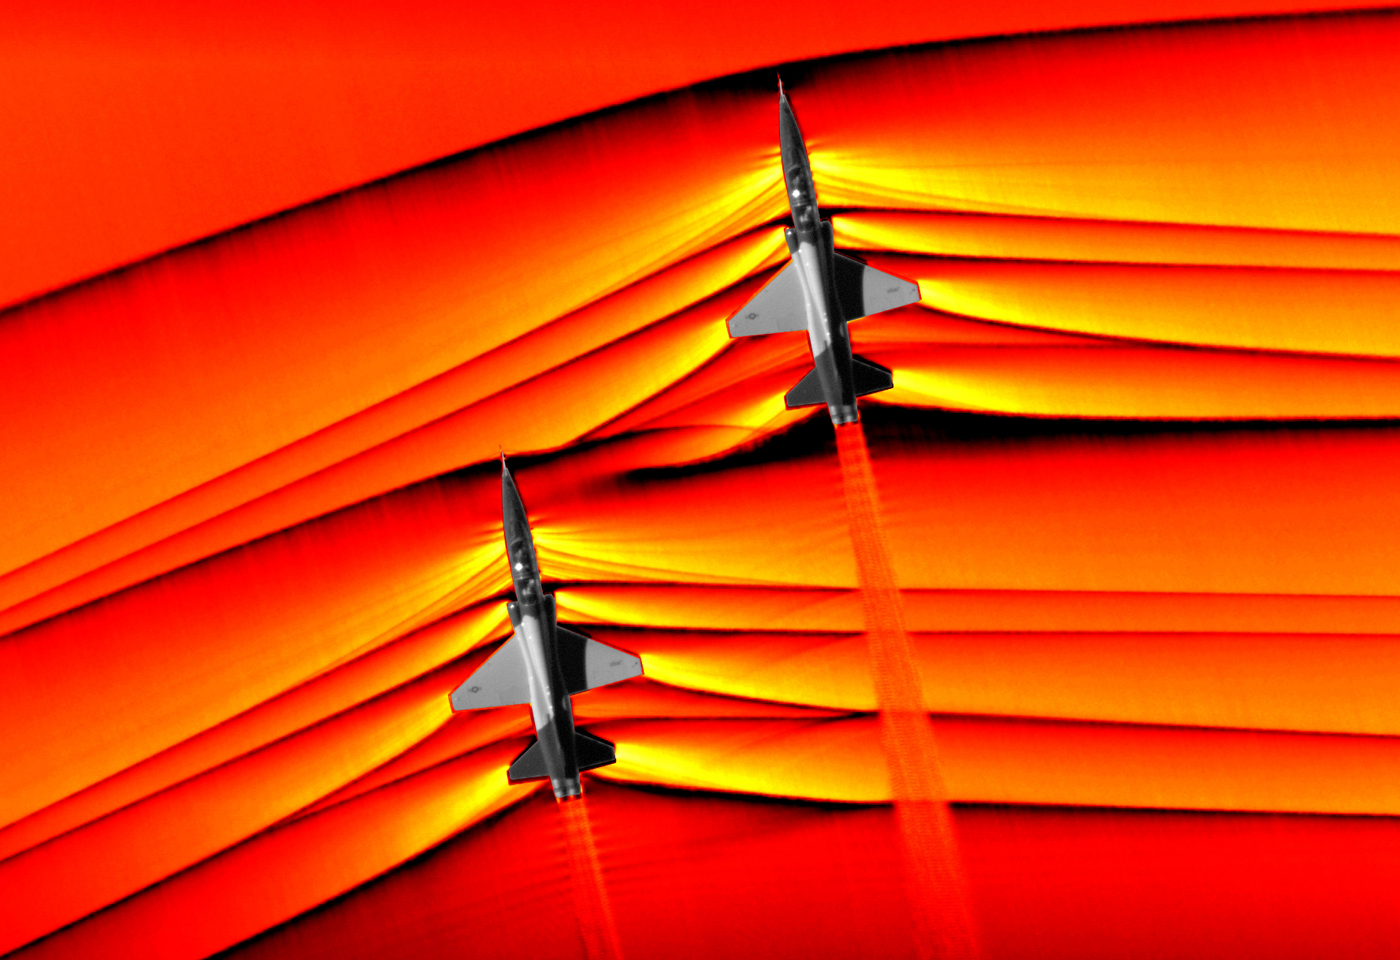 NASA captures first-ever images of intersecting shock waves from two supersonic jets